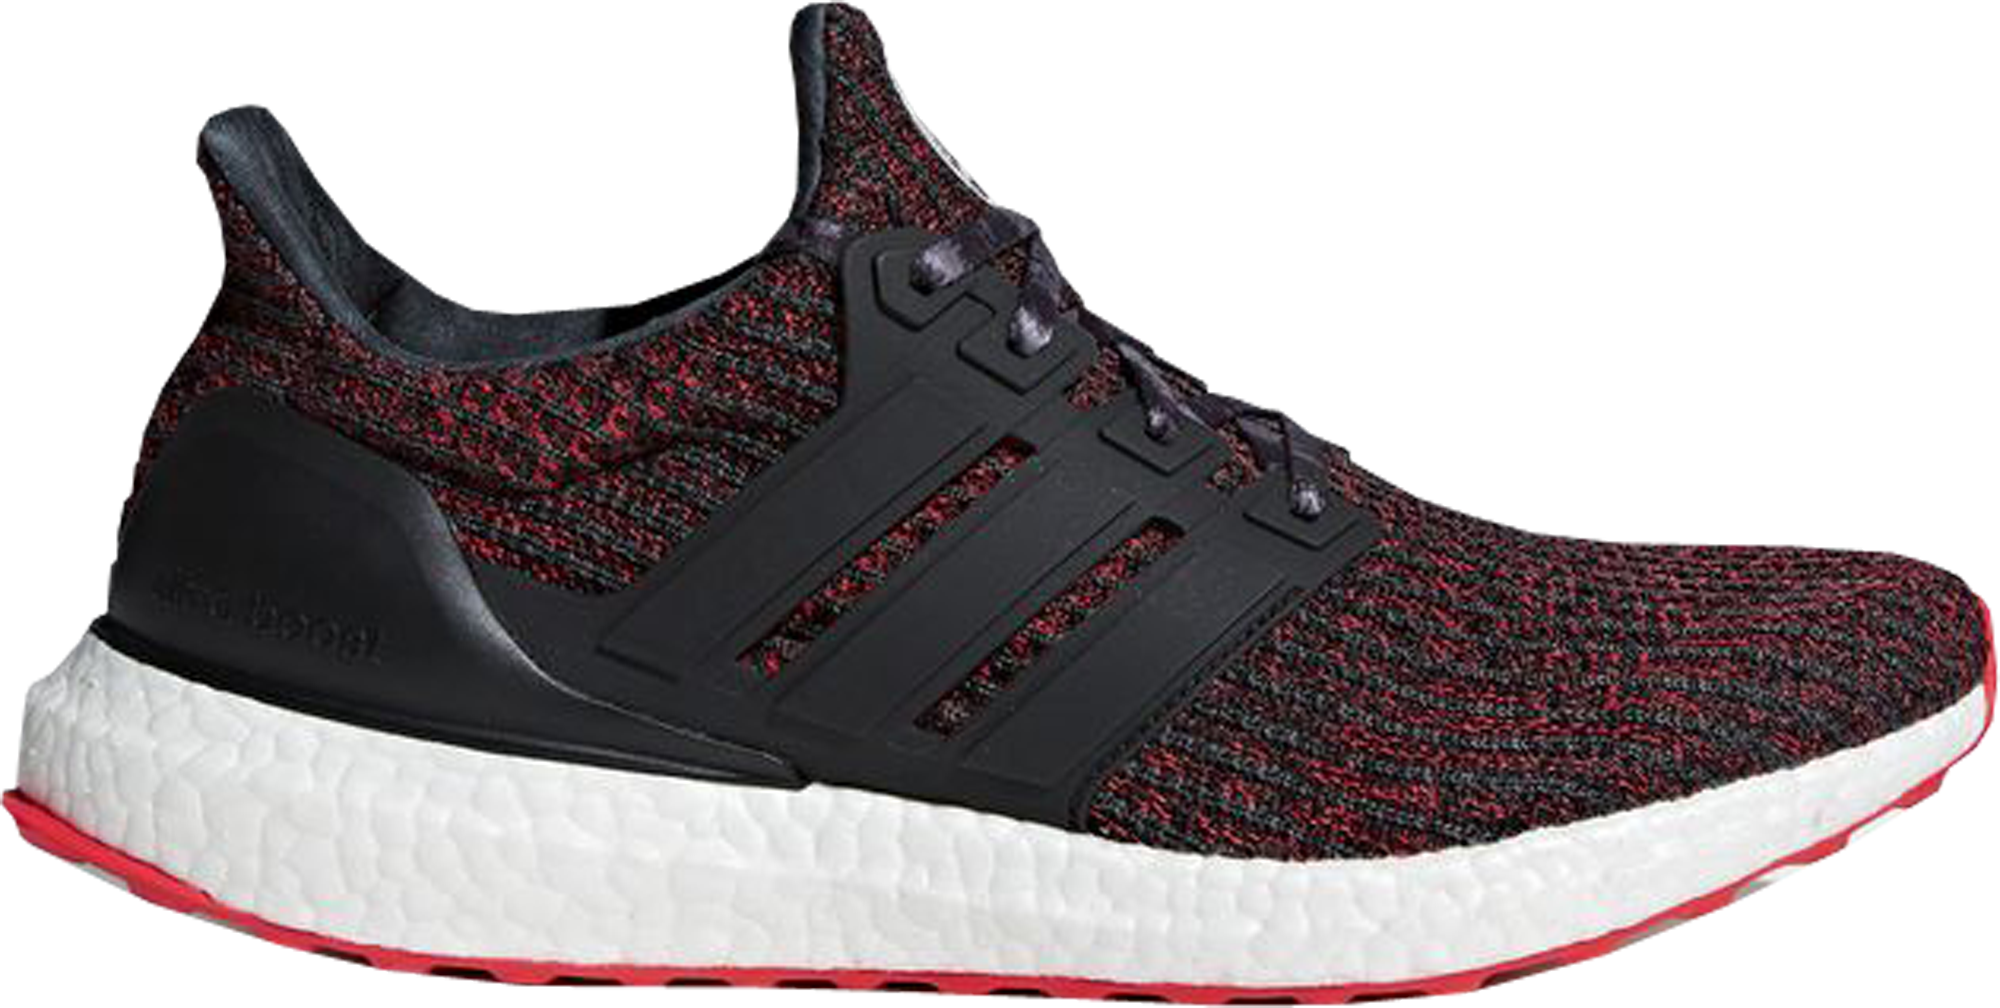 new styles 4a791 75090 adidas Ultra Boost 4.0 Chinese New Year 2018 - StockX News